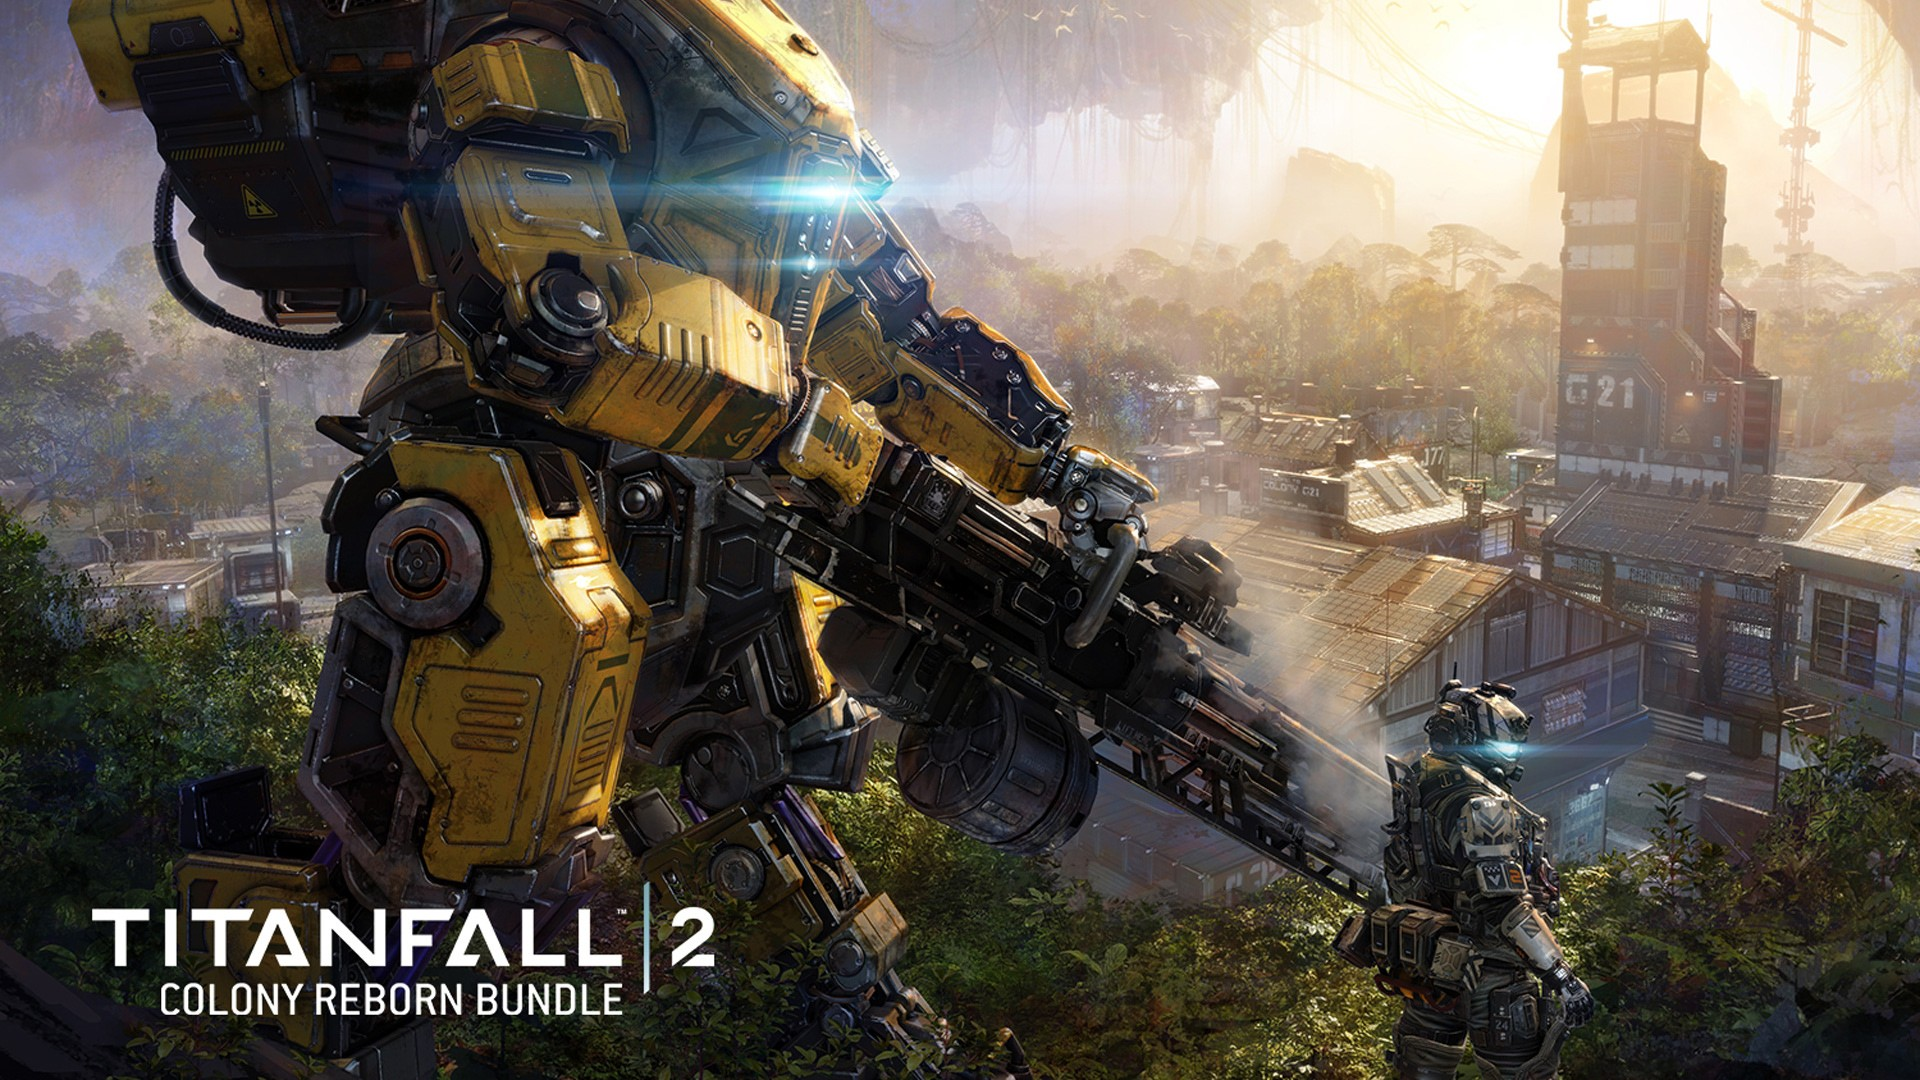 Iphone Wallpaper Fall Flowers Titanfall 2 Colony Reborn Dlc Wallpapers Hd Wallpapers